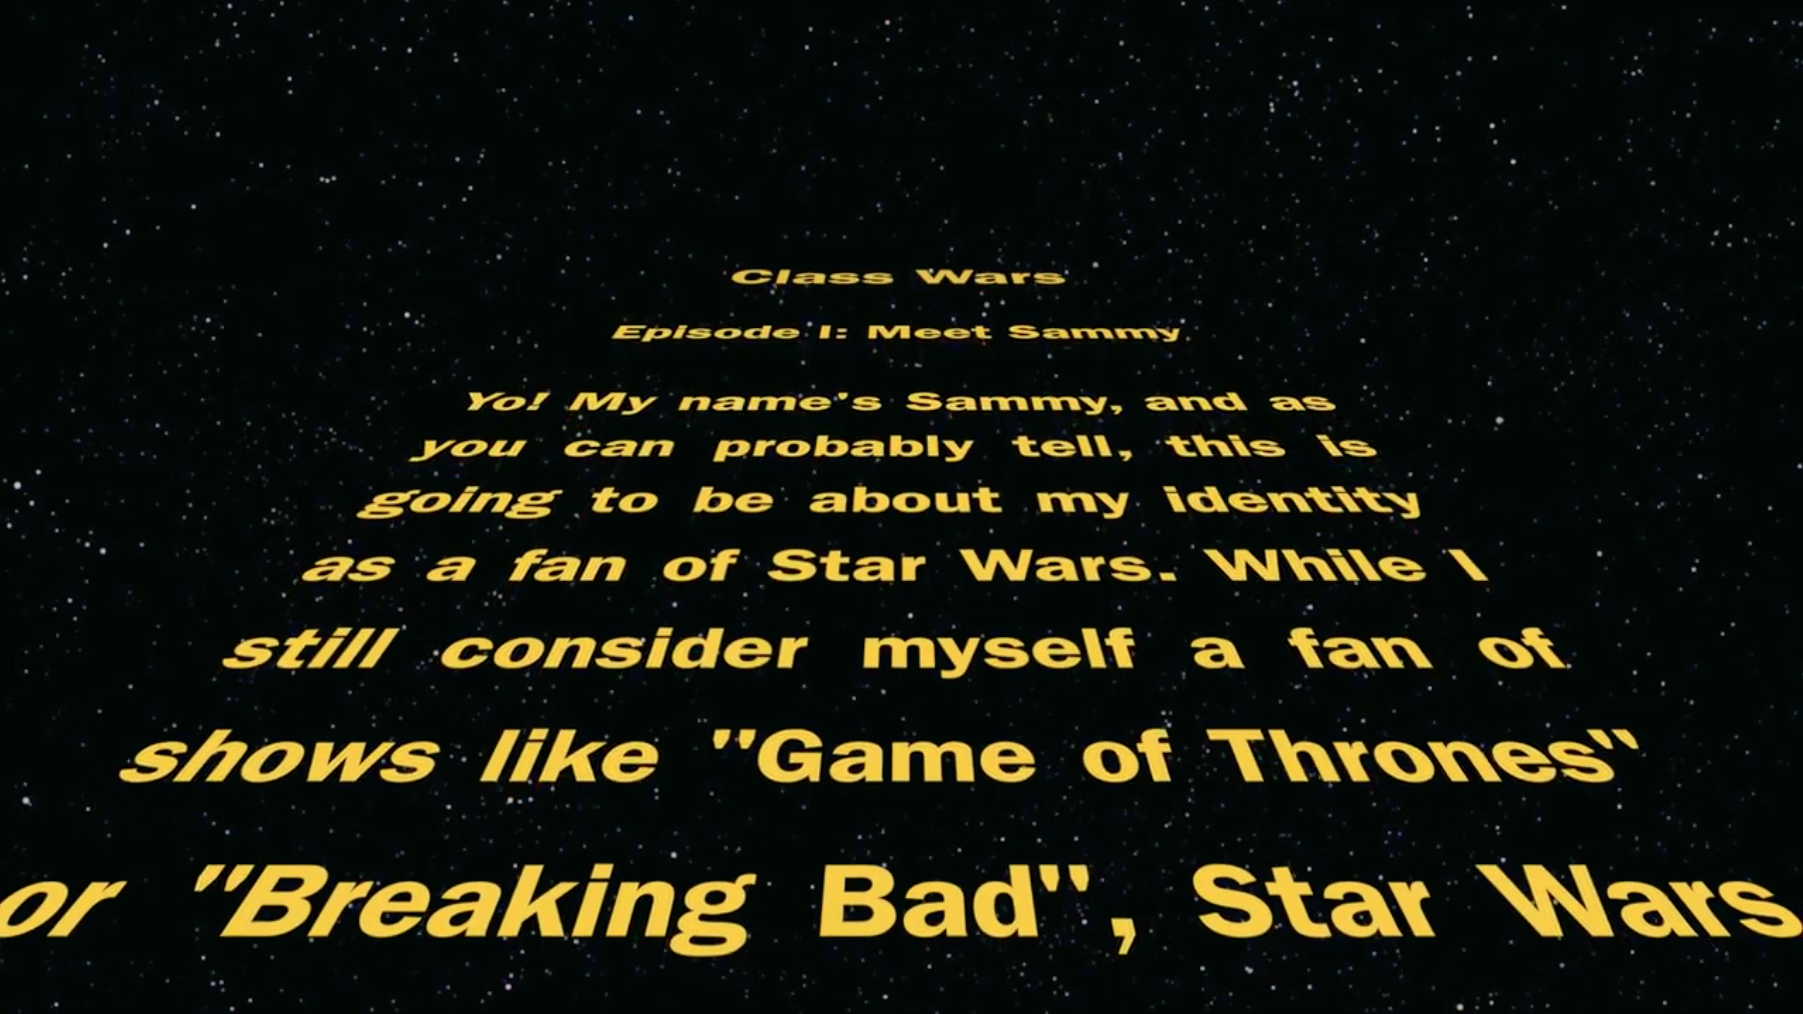 "Screenshot of Video Autoethnography on Fan identity. Star Wars opening scroll with the text in yellow over a black background. The text reads: Yo! My name's Sammy, and as you can probably tell, this is going to be about my identity as a fan of Star Wars. While I still consider myself a fan of shows like ""Game of Thrones: or ""Breaking Bad"", Star Wars . . ."